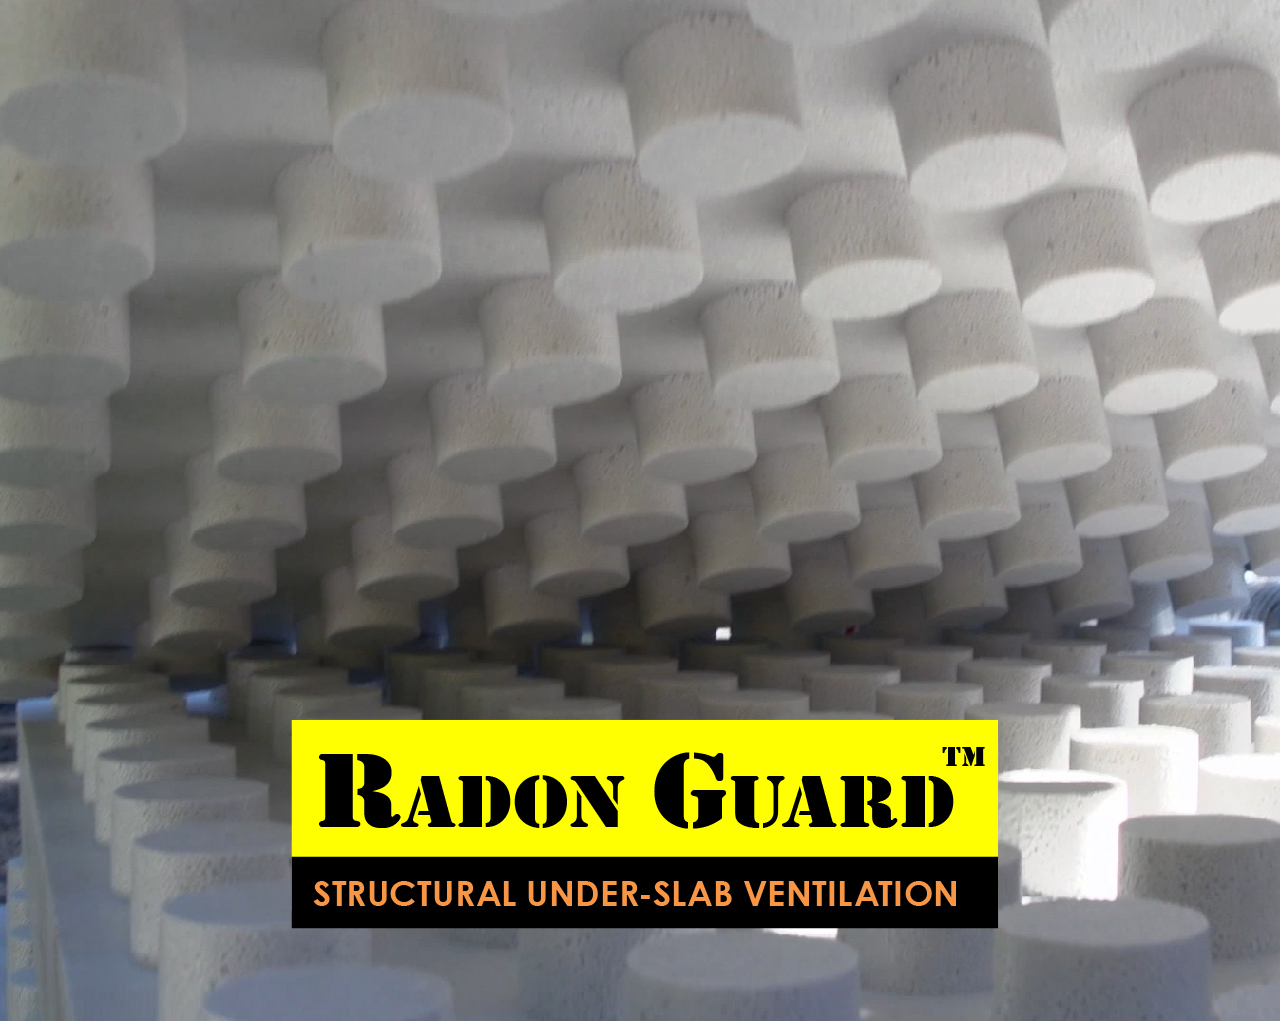 Unstacking sheets of Radon Guard.